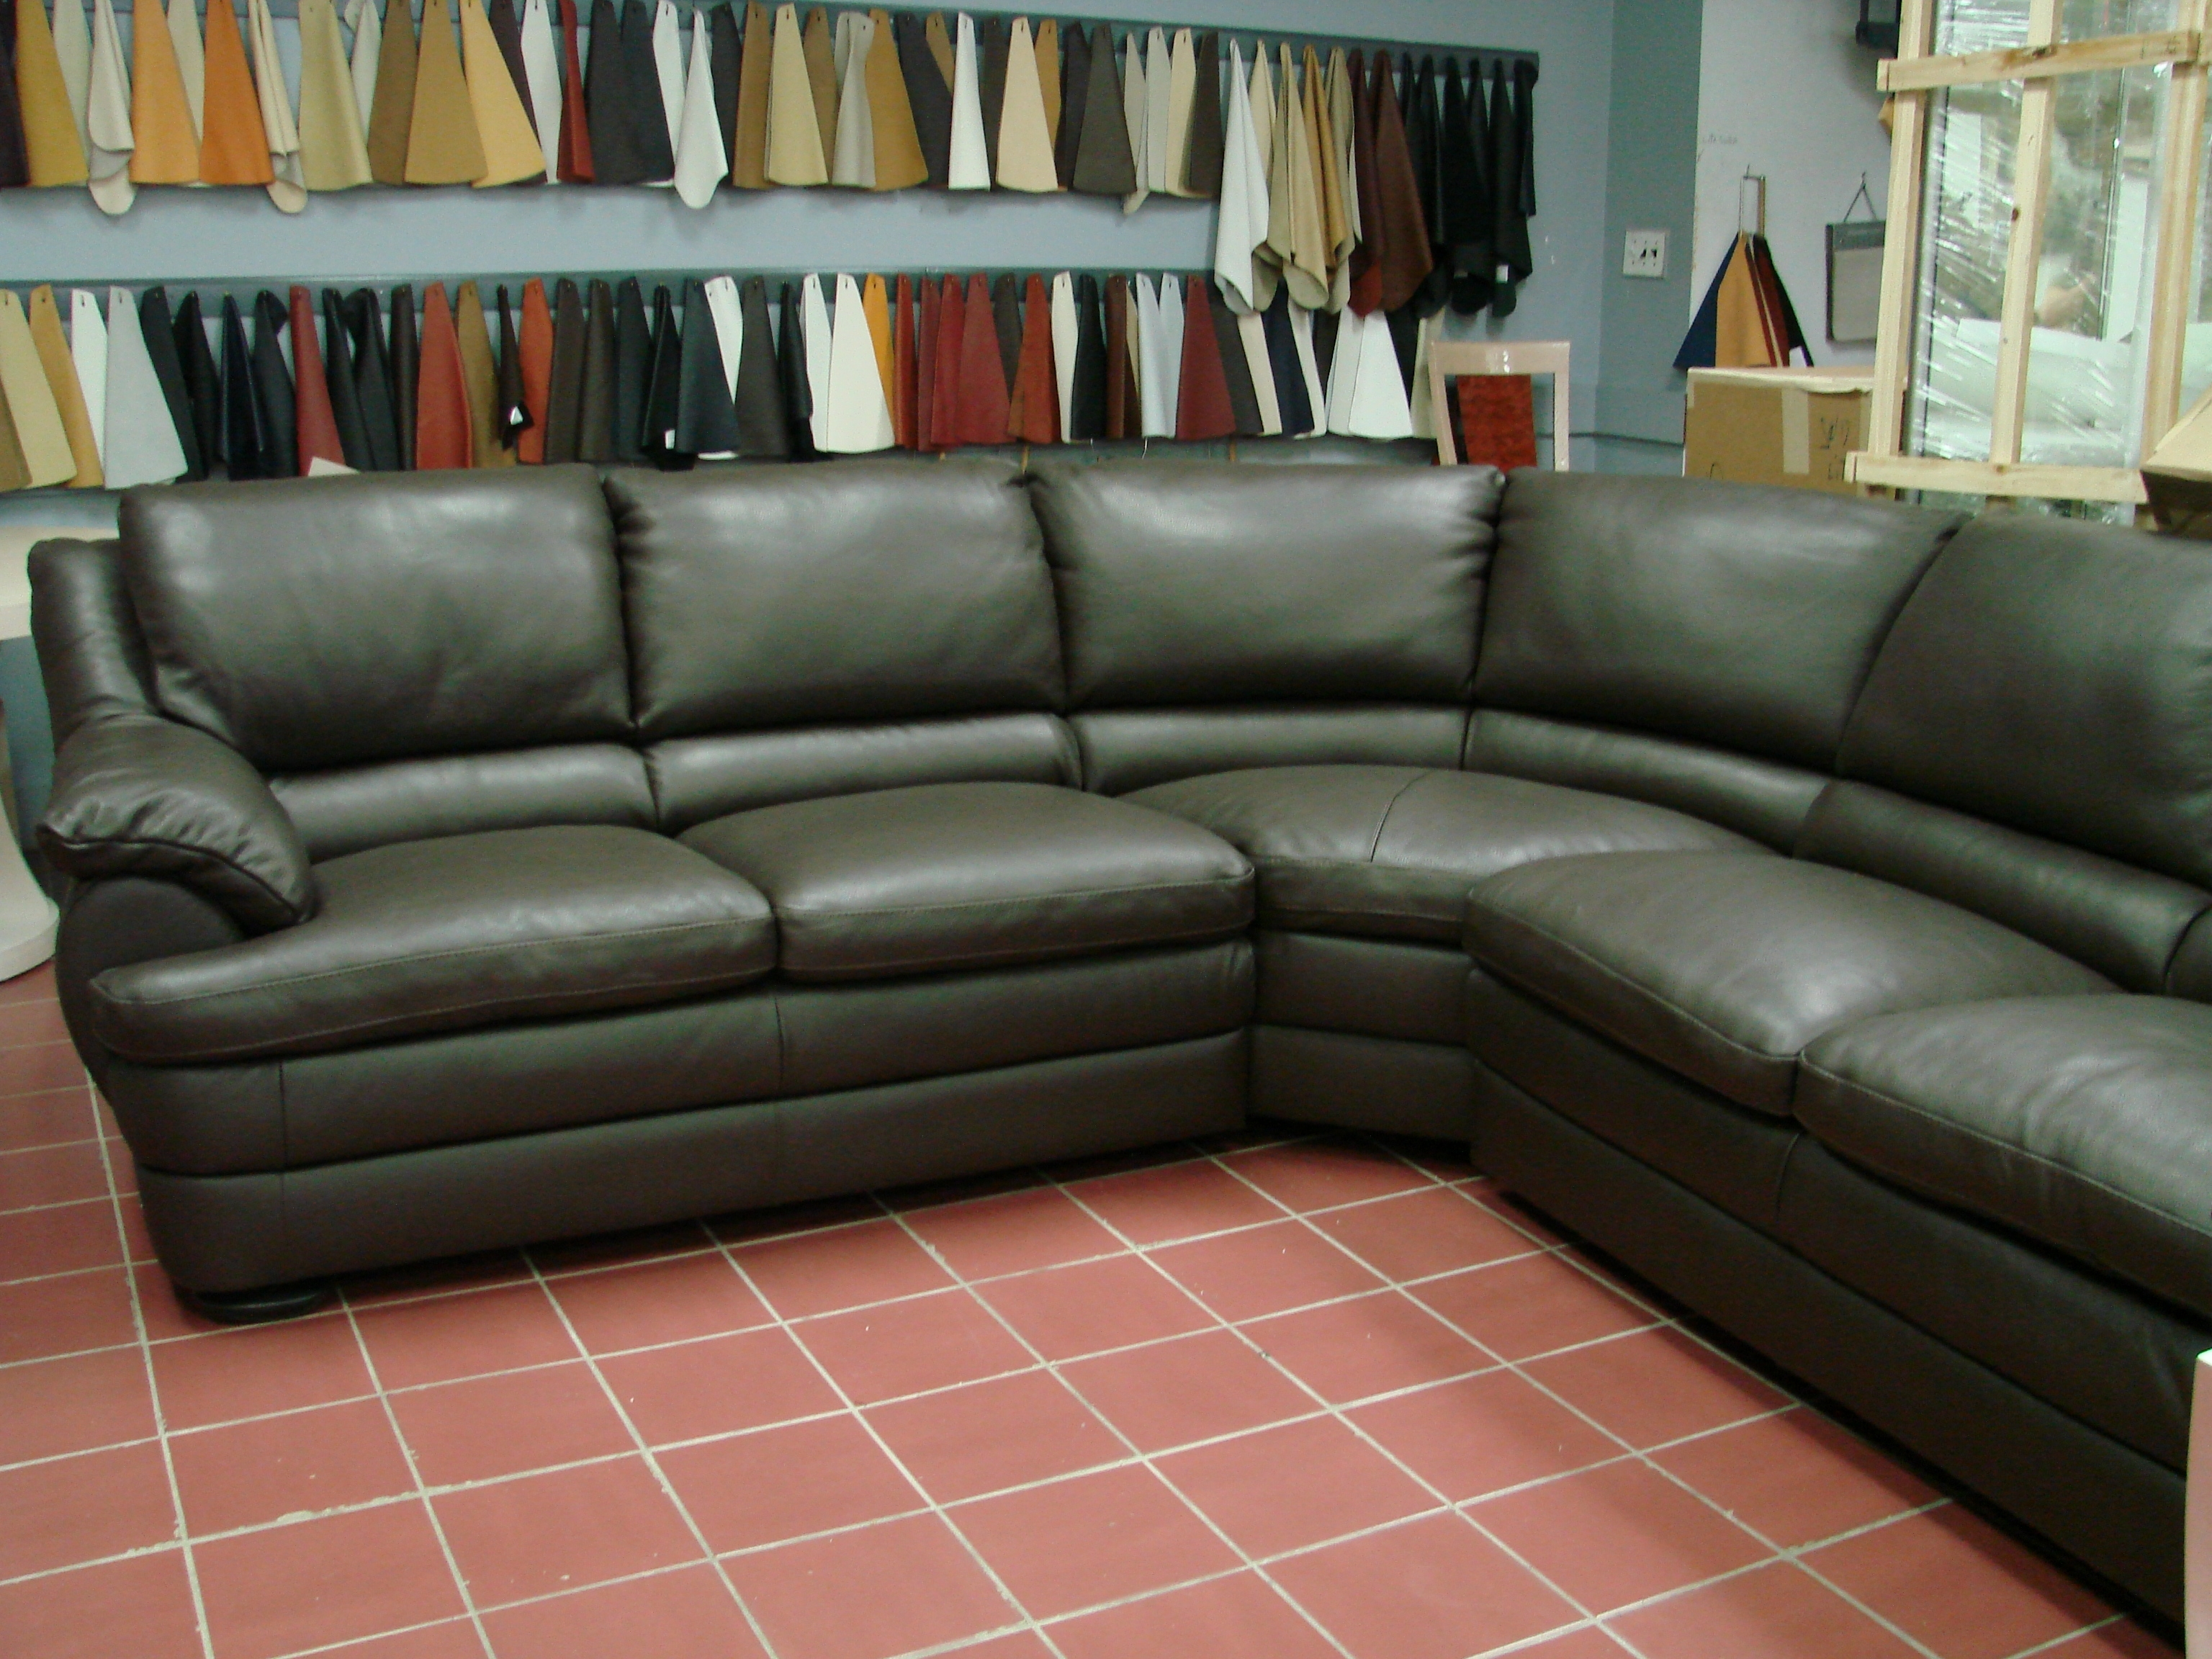 Leather Sectional Sofa With Recliners Sofas Ottawa For Sale Couch Inside Ottawa Sectional Sofas (View 9 of 10)